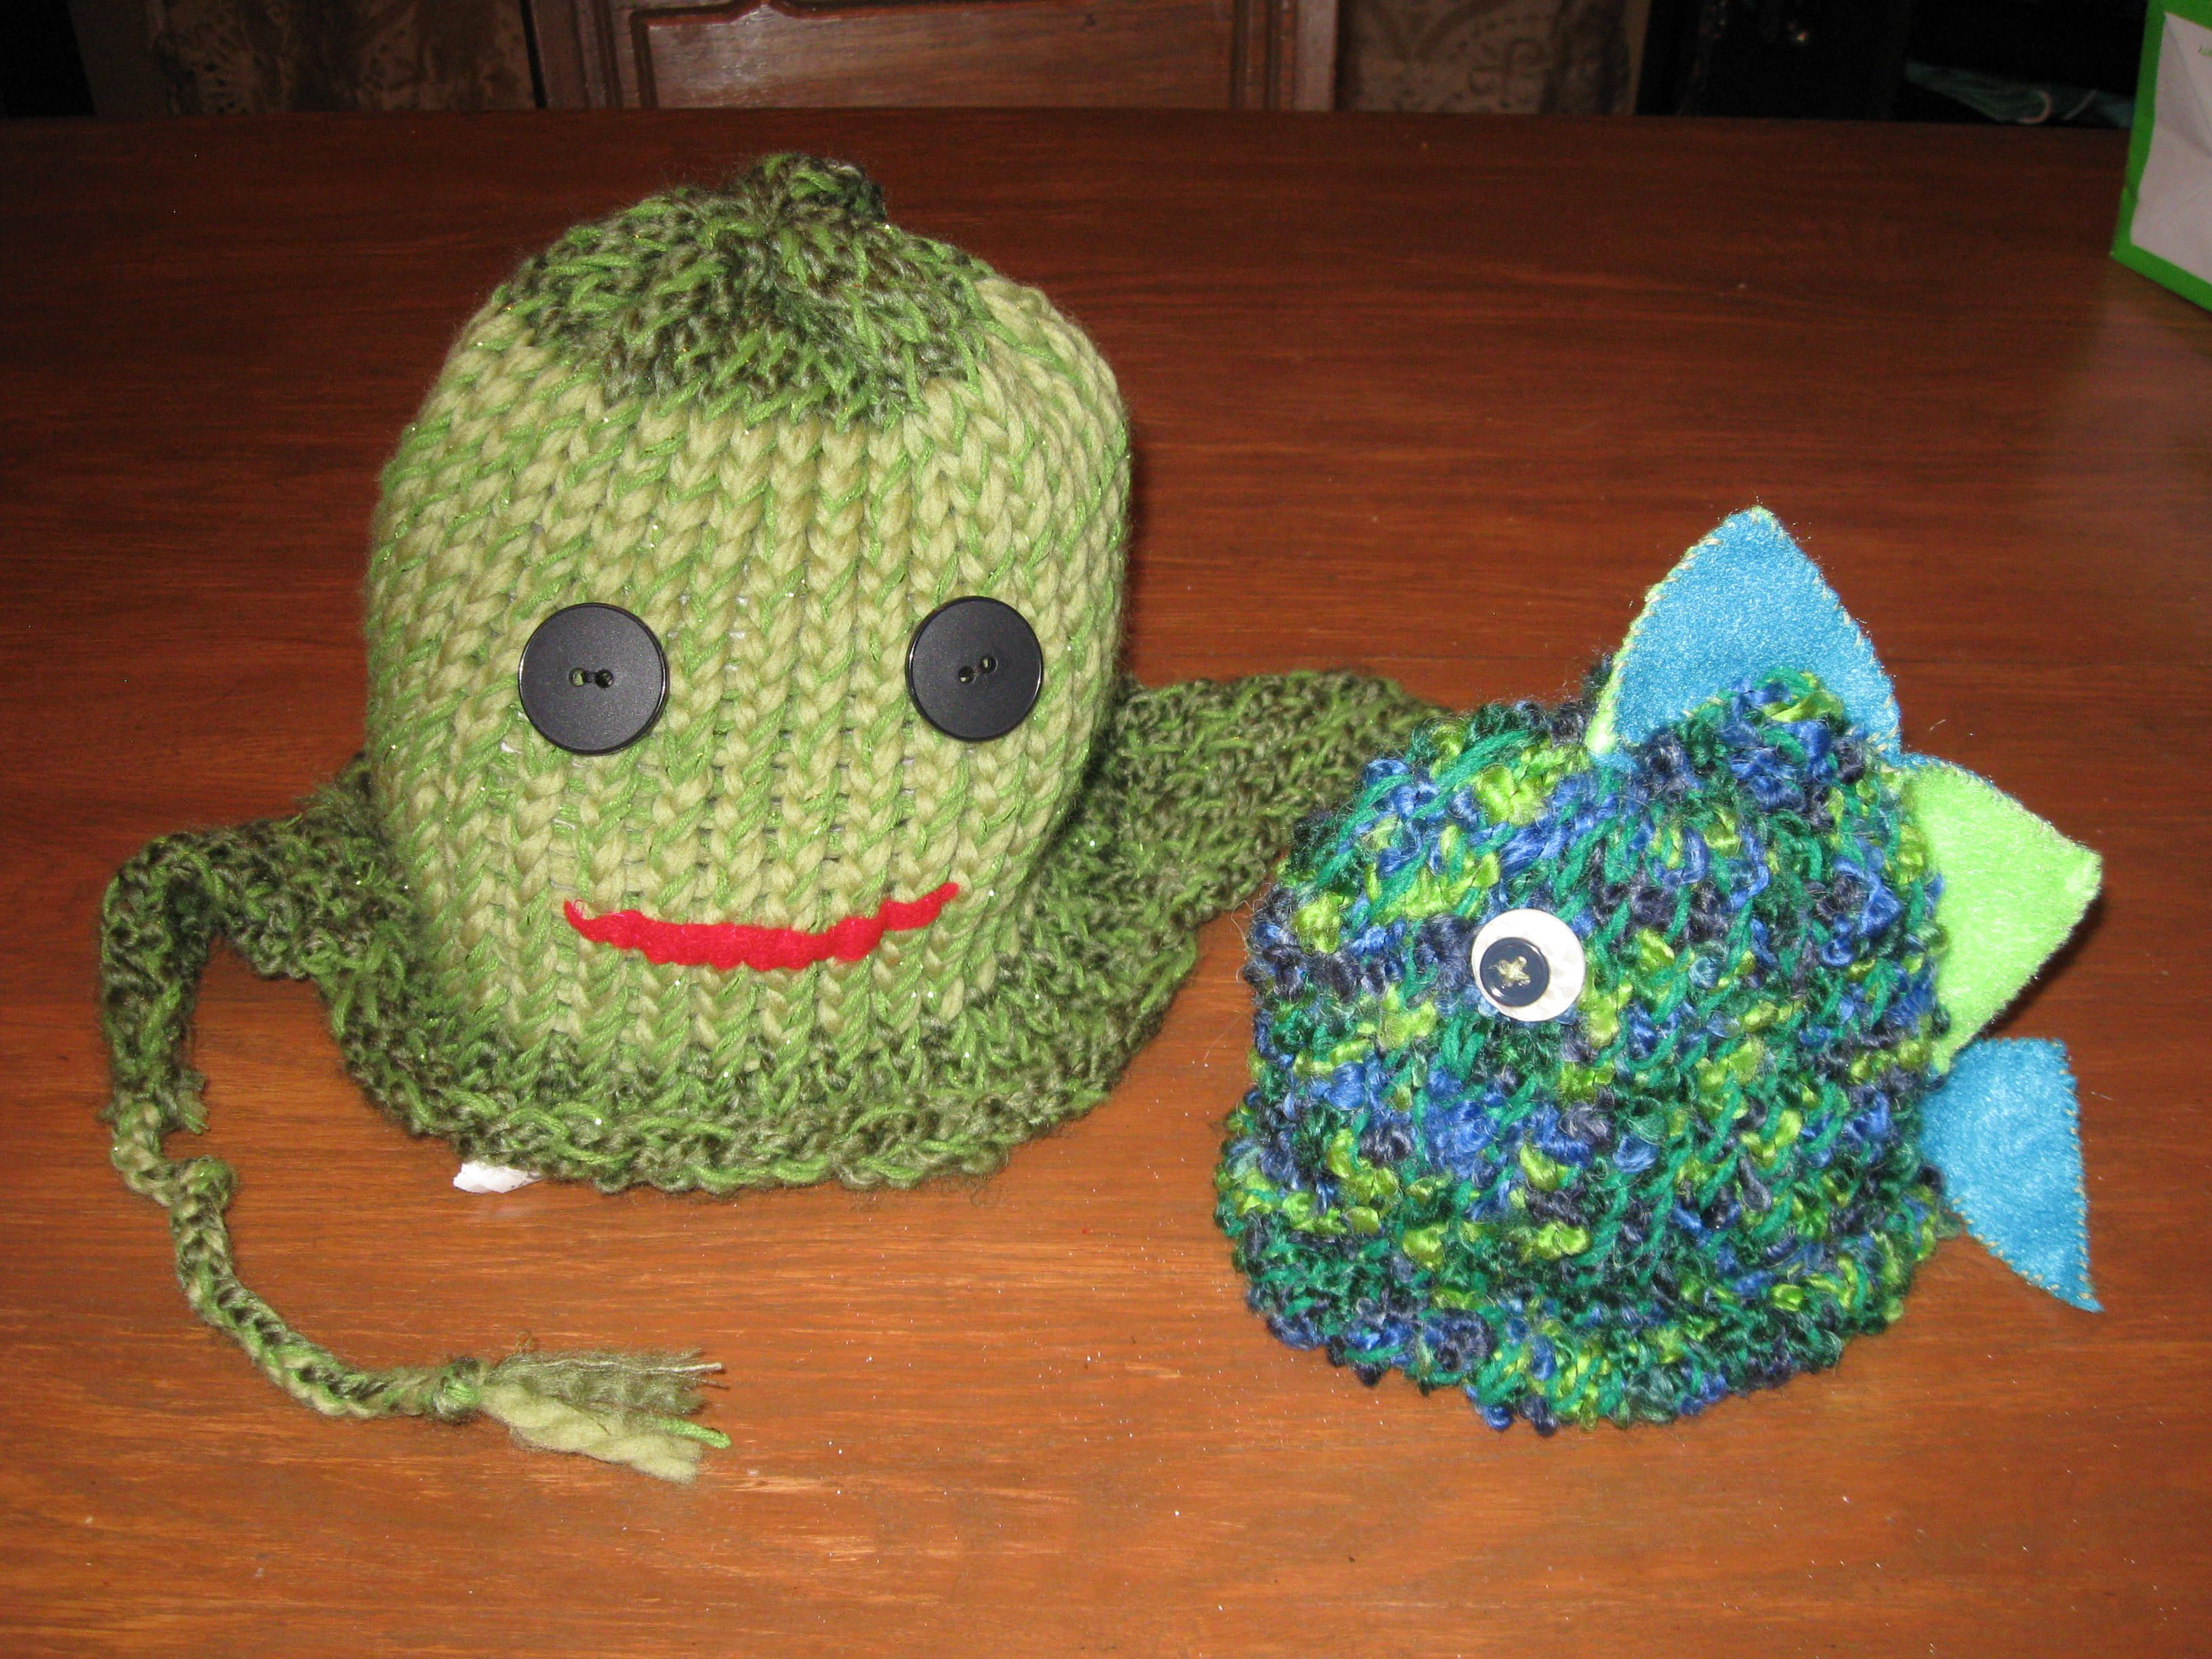 Turtle and Fish Hat!  Creative Cottage in Afton MN!  Now in Adult sizes too!